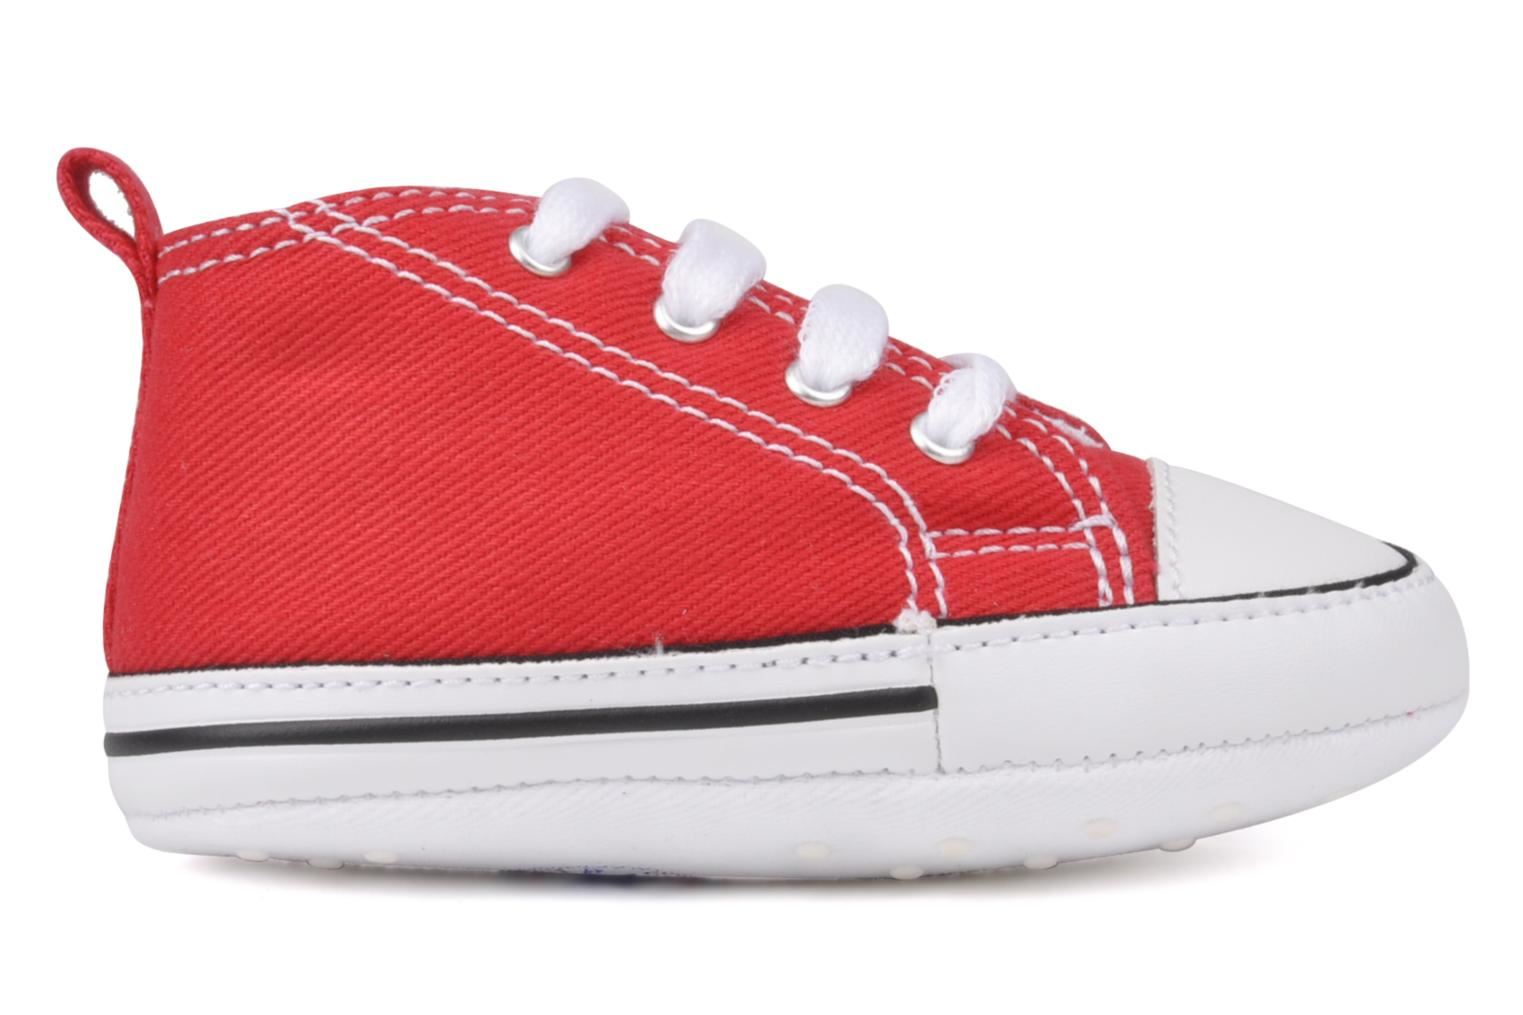 CONVERSE FIRST STAR RED CRIB 88875